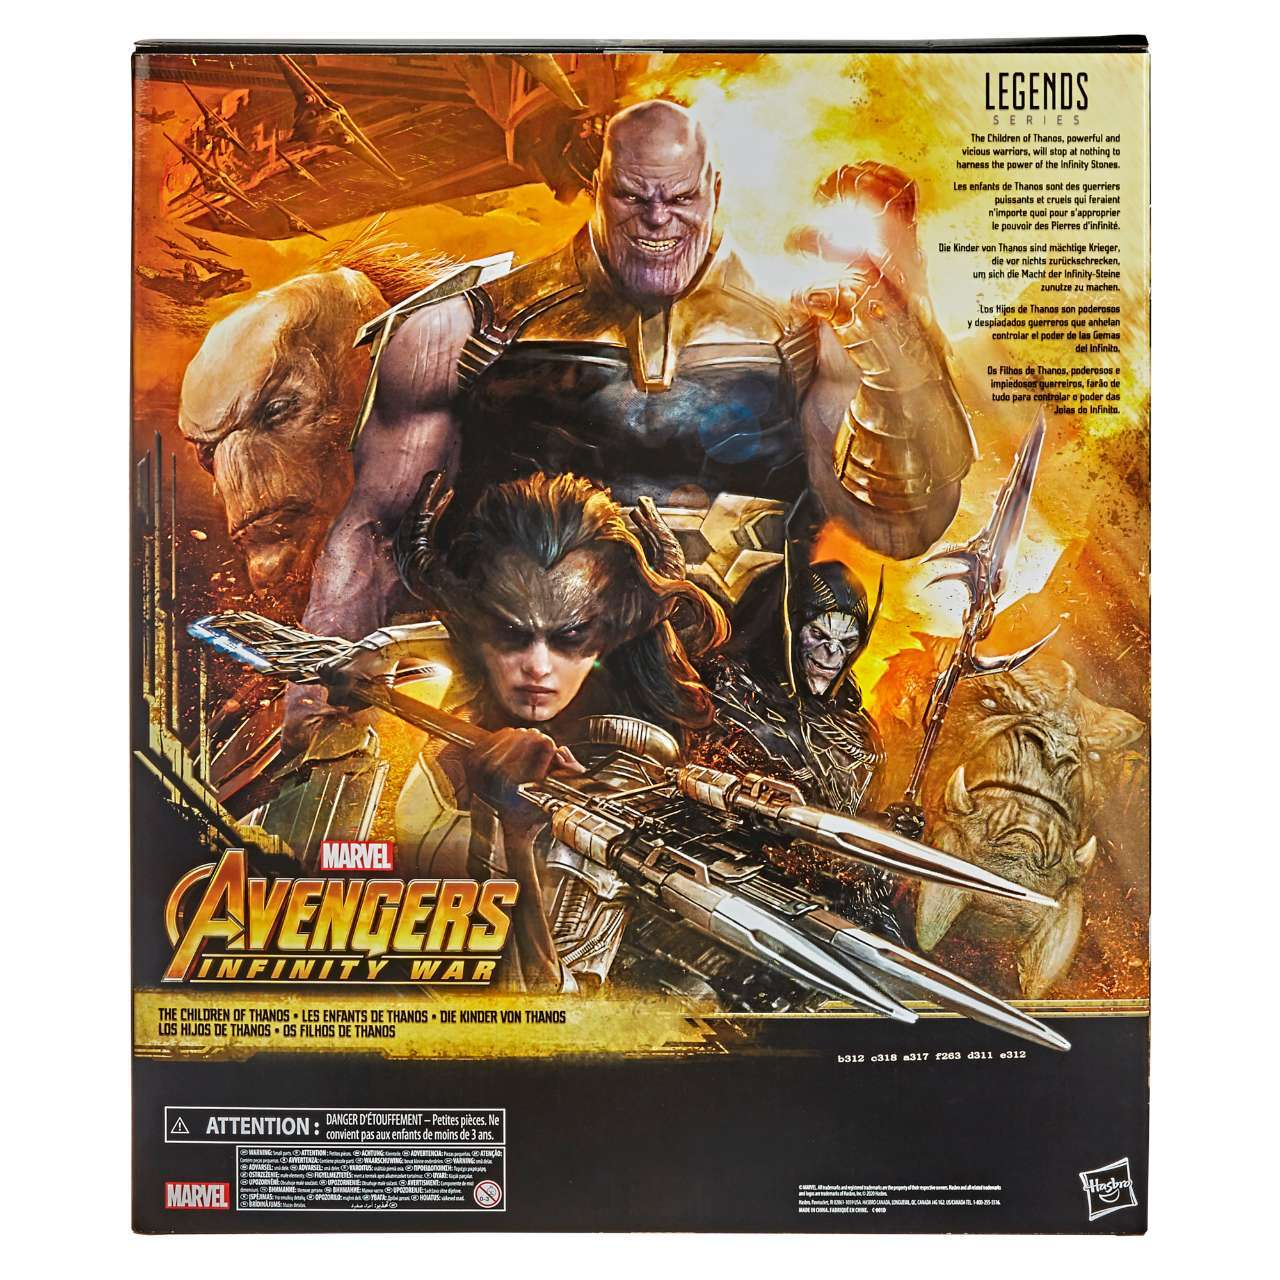 MARVEL LEGENDS SERIES 6-INCH-SCALE THE CHILDREN OF THANOS Figure 5-Pack -pckging